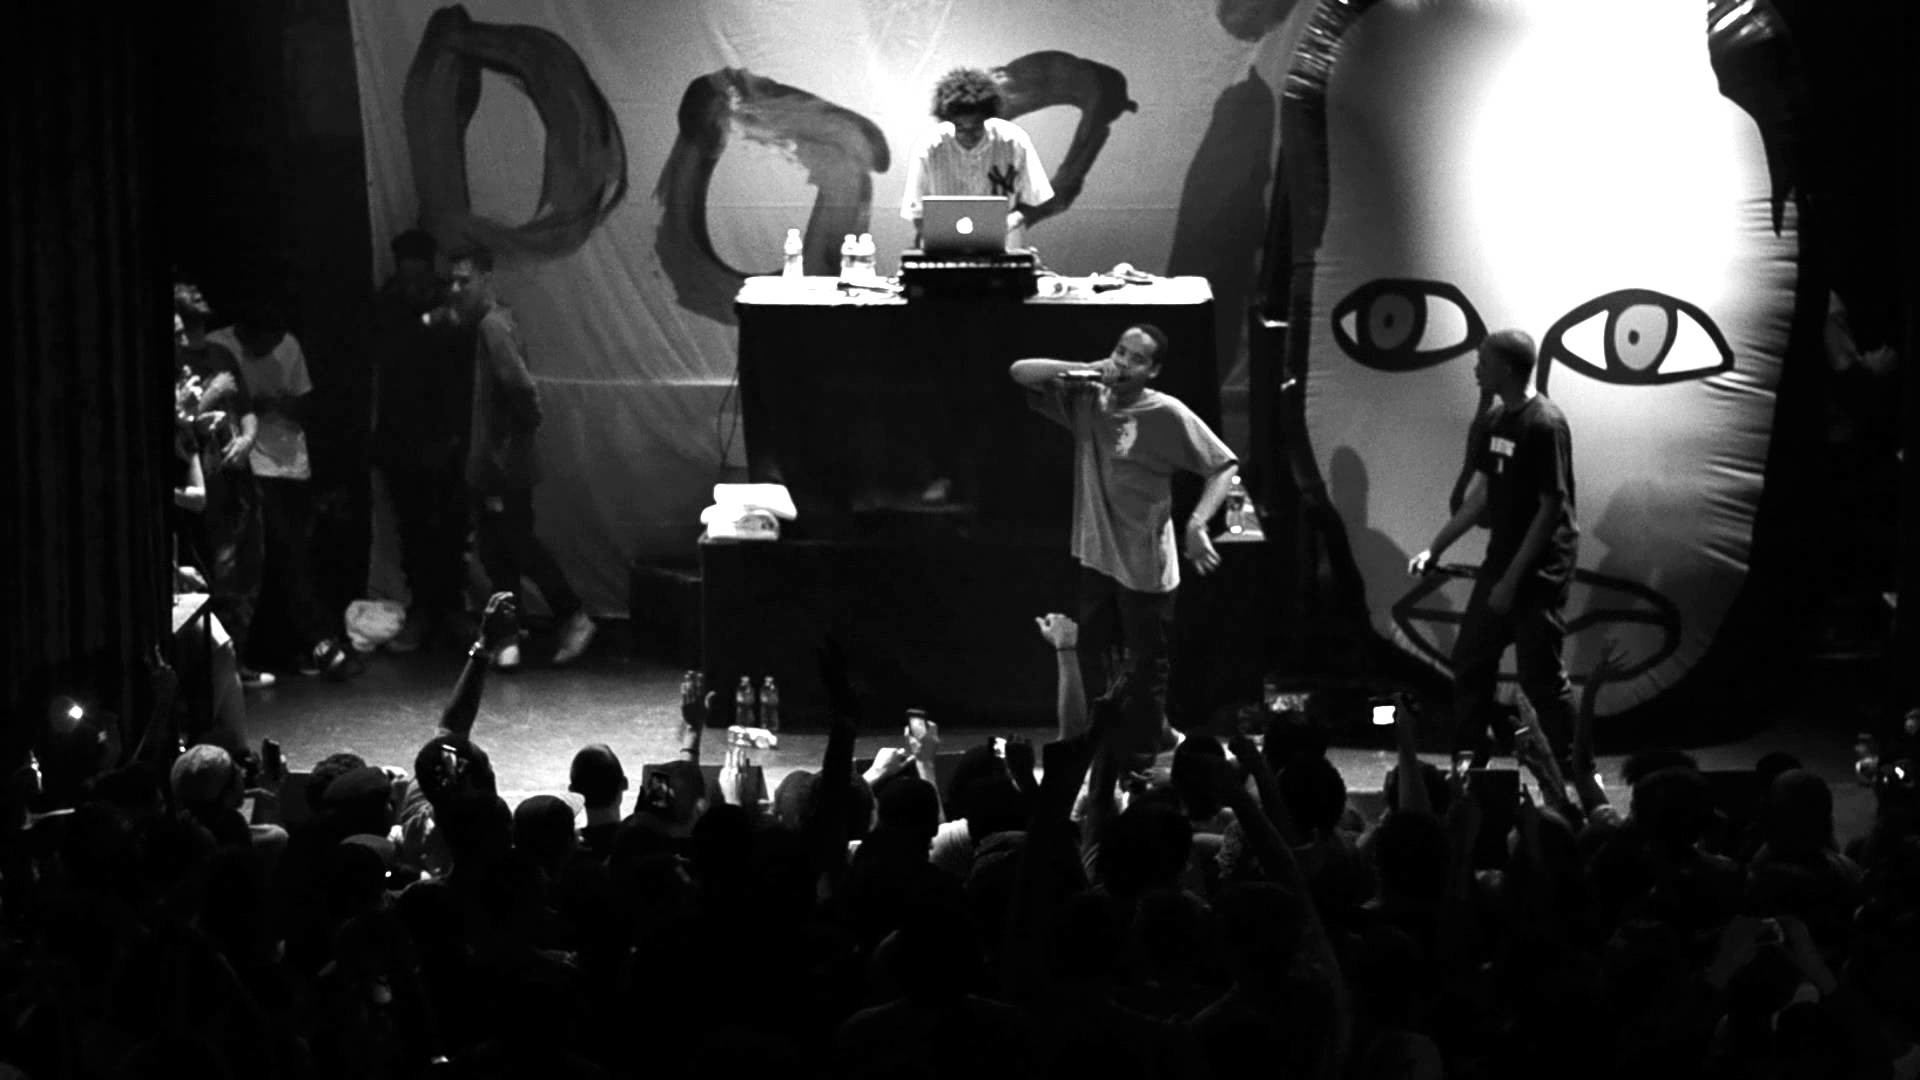 Earl Sweatshirt – Live – The Doris Tour Vince Staples, October 7, 2013 The  Bowery Ballroom, New York – YouTube